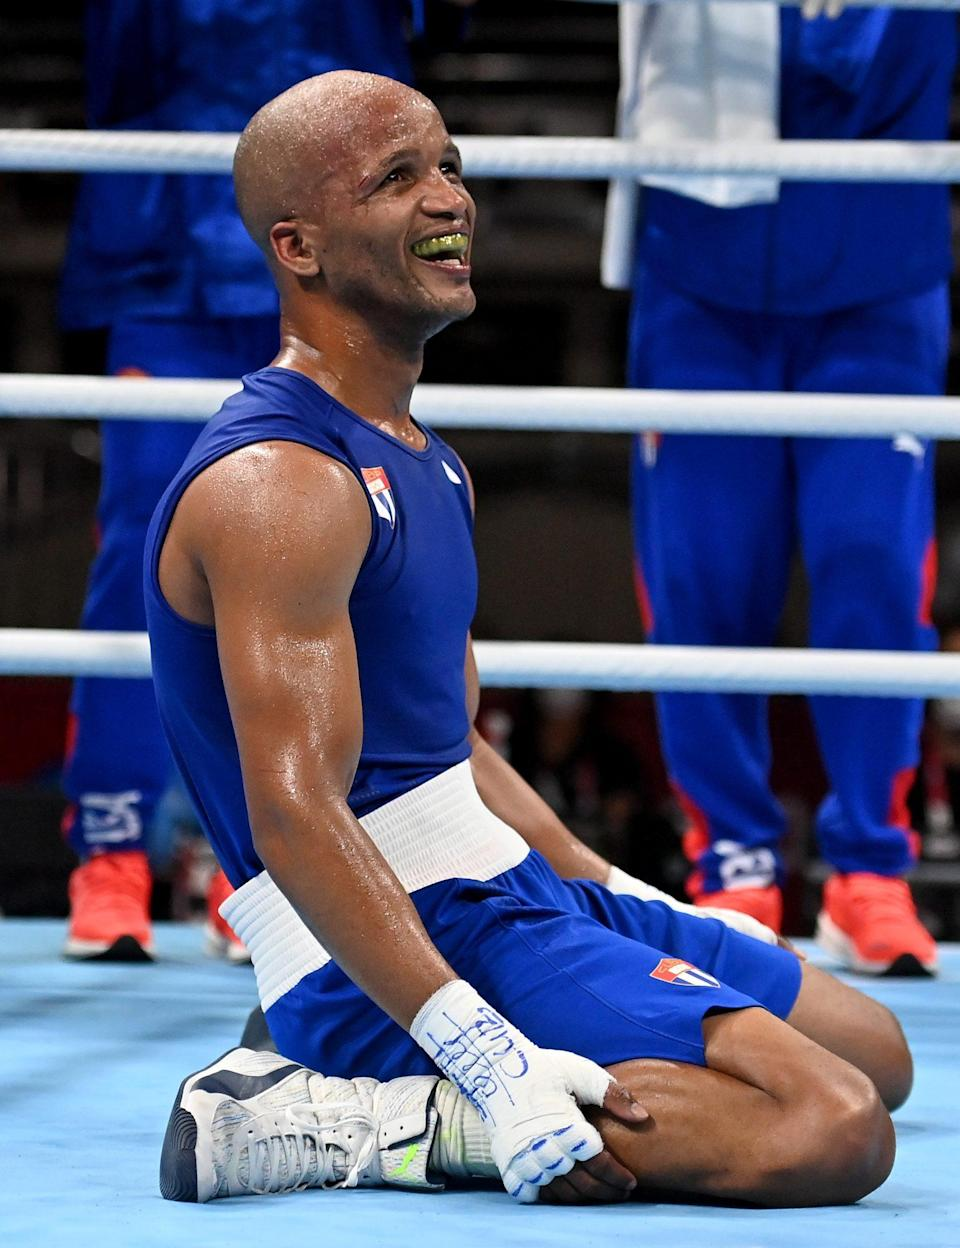 <p>Team Cuba's Roniel Iglesias falls to his knees after winning the gold medal against Pat McCormack of Team Great Britain during the Men's Welter (63-69kg) final at Kokugikan Arena on August 3.</p>